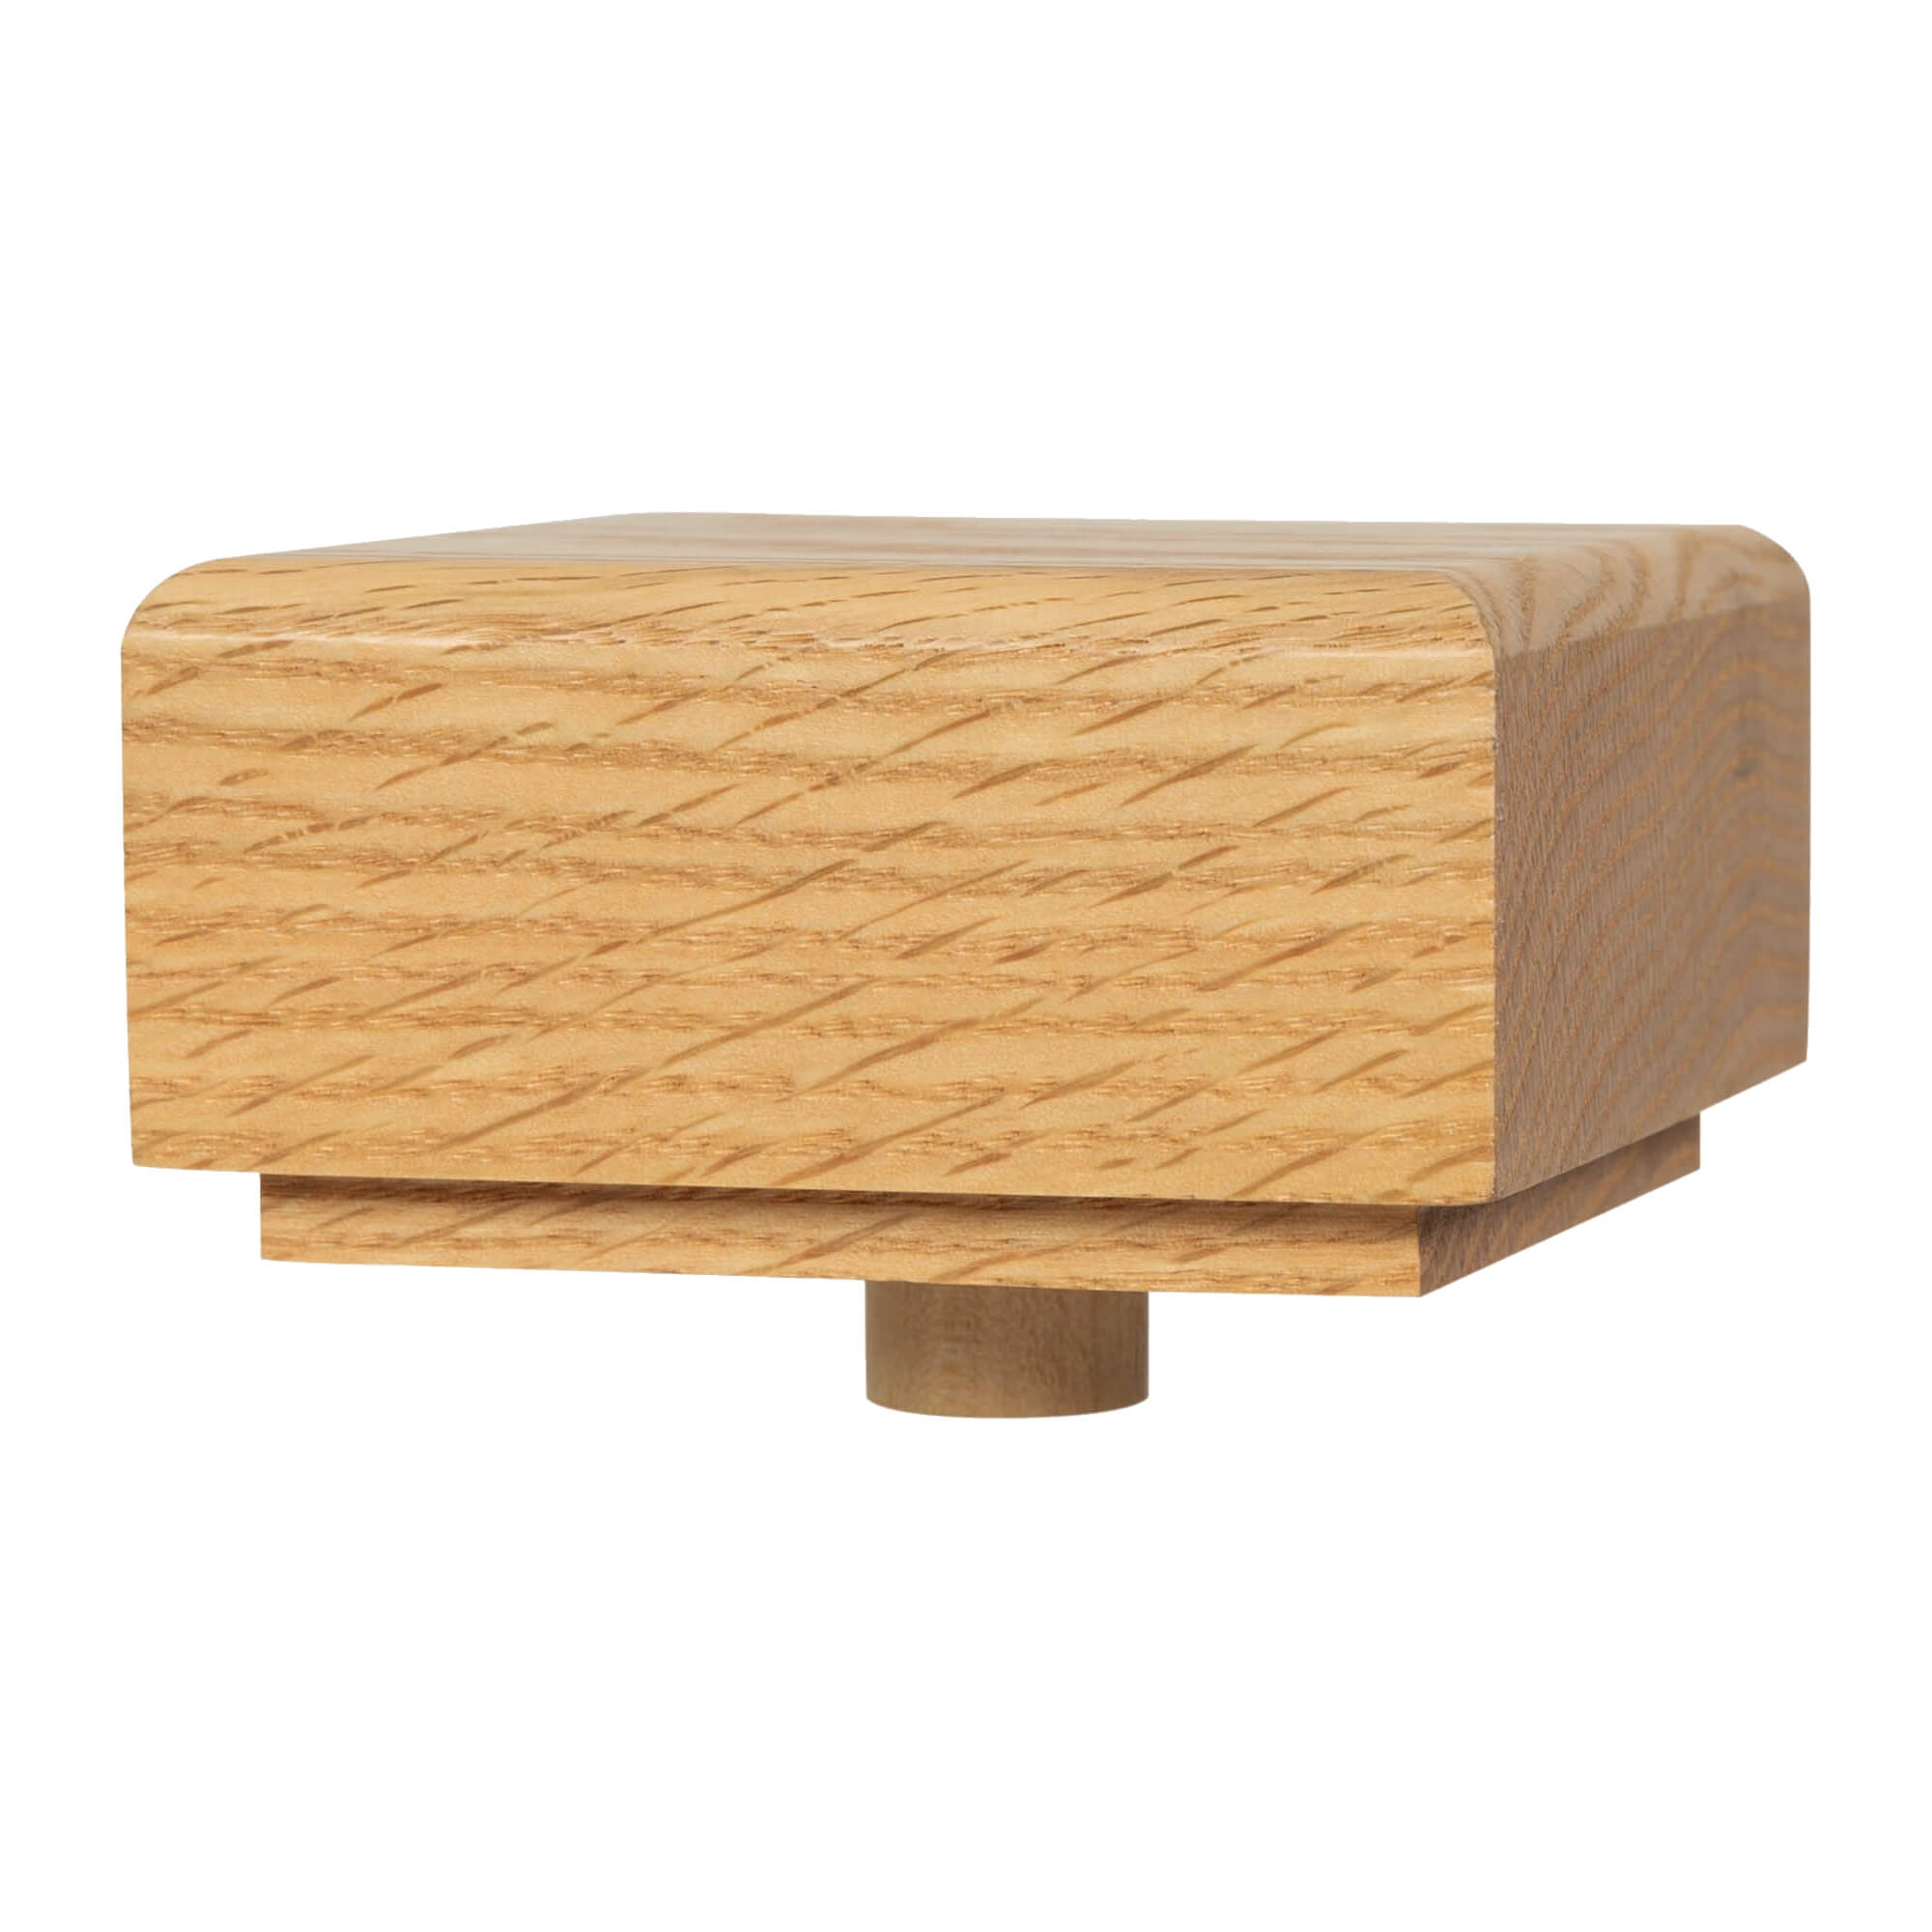 "Square Newel Cap w/Dowel for Contemporary 3"" (4001) and 3-1/2"" (4003) Square Newels (430, 432)"